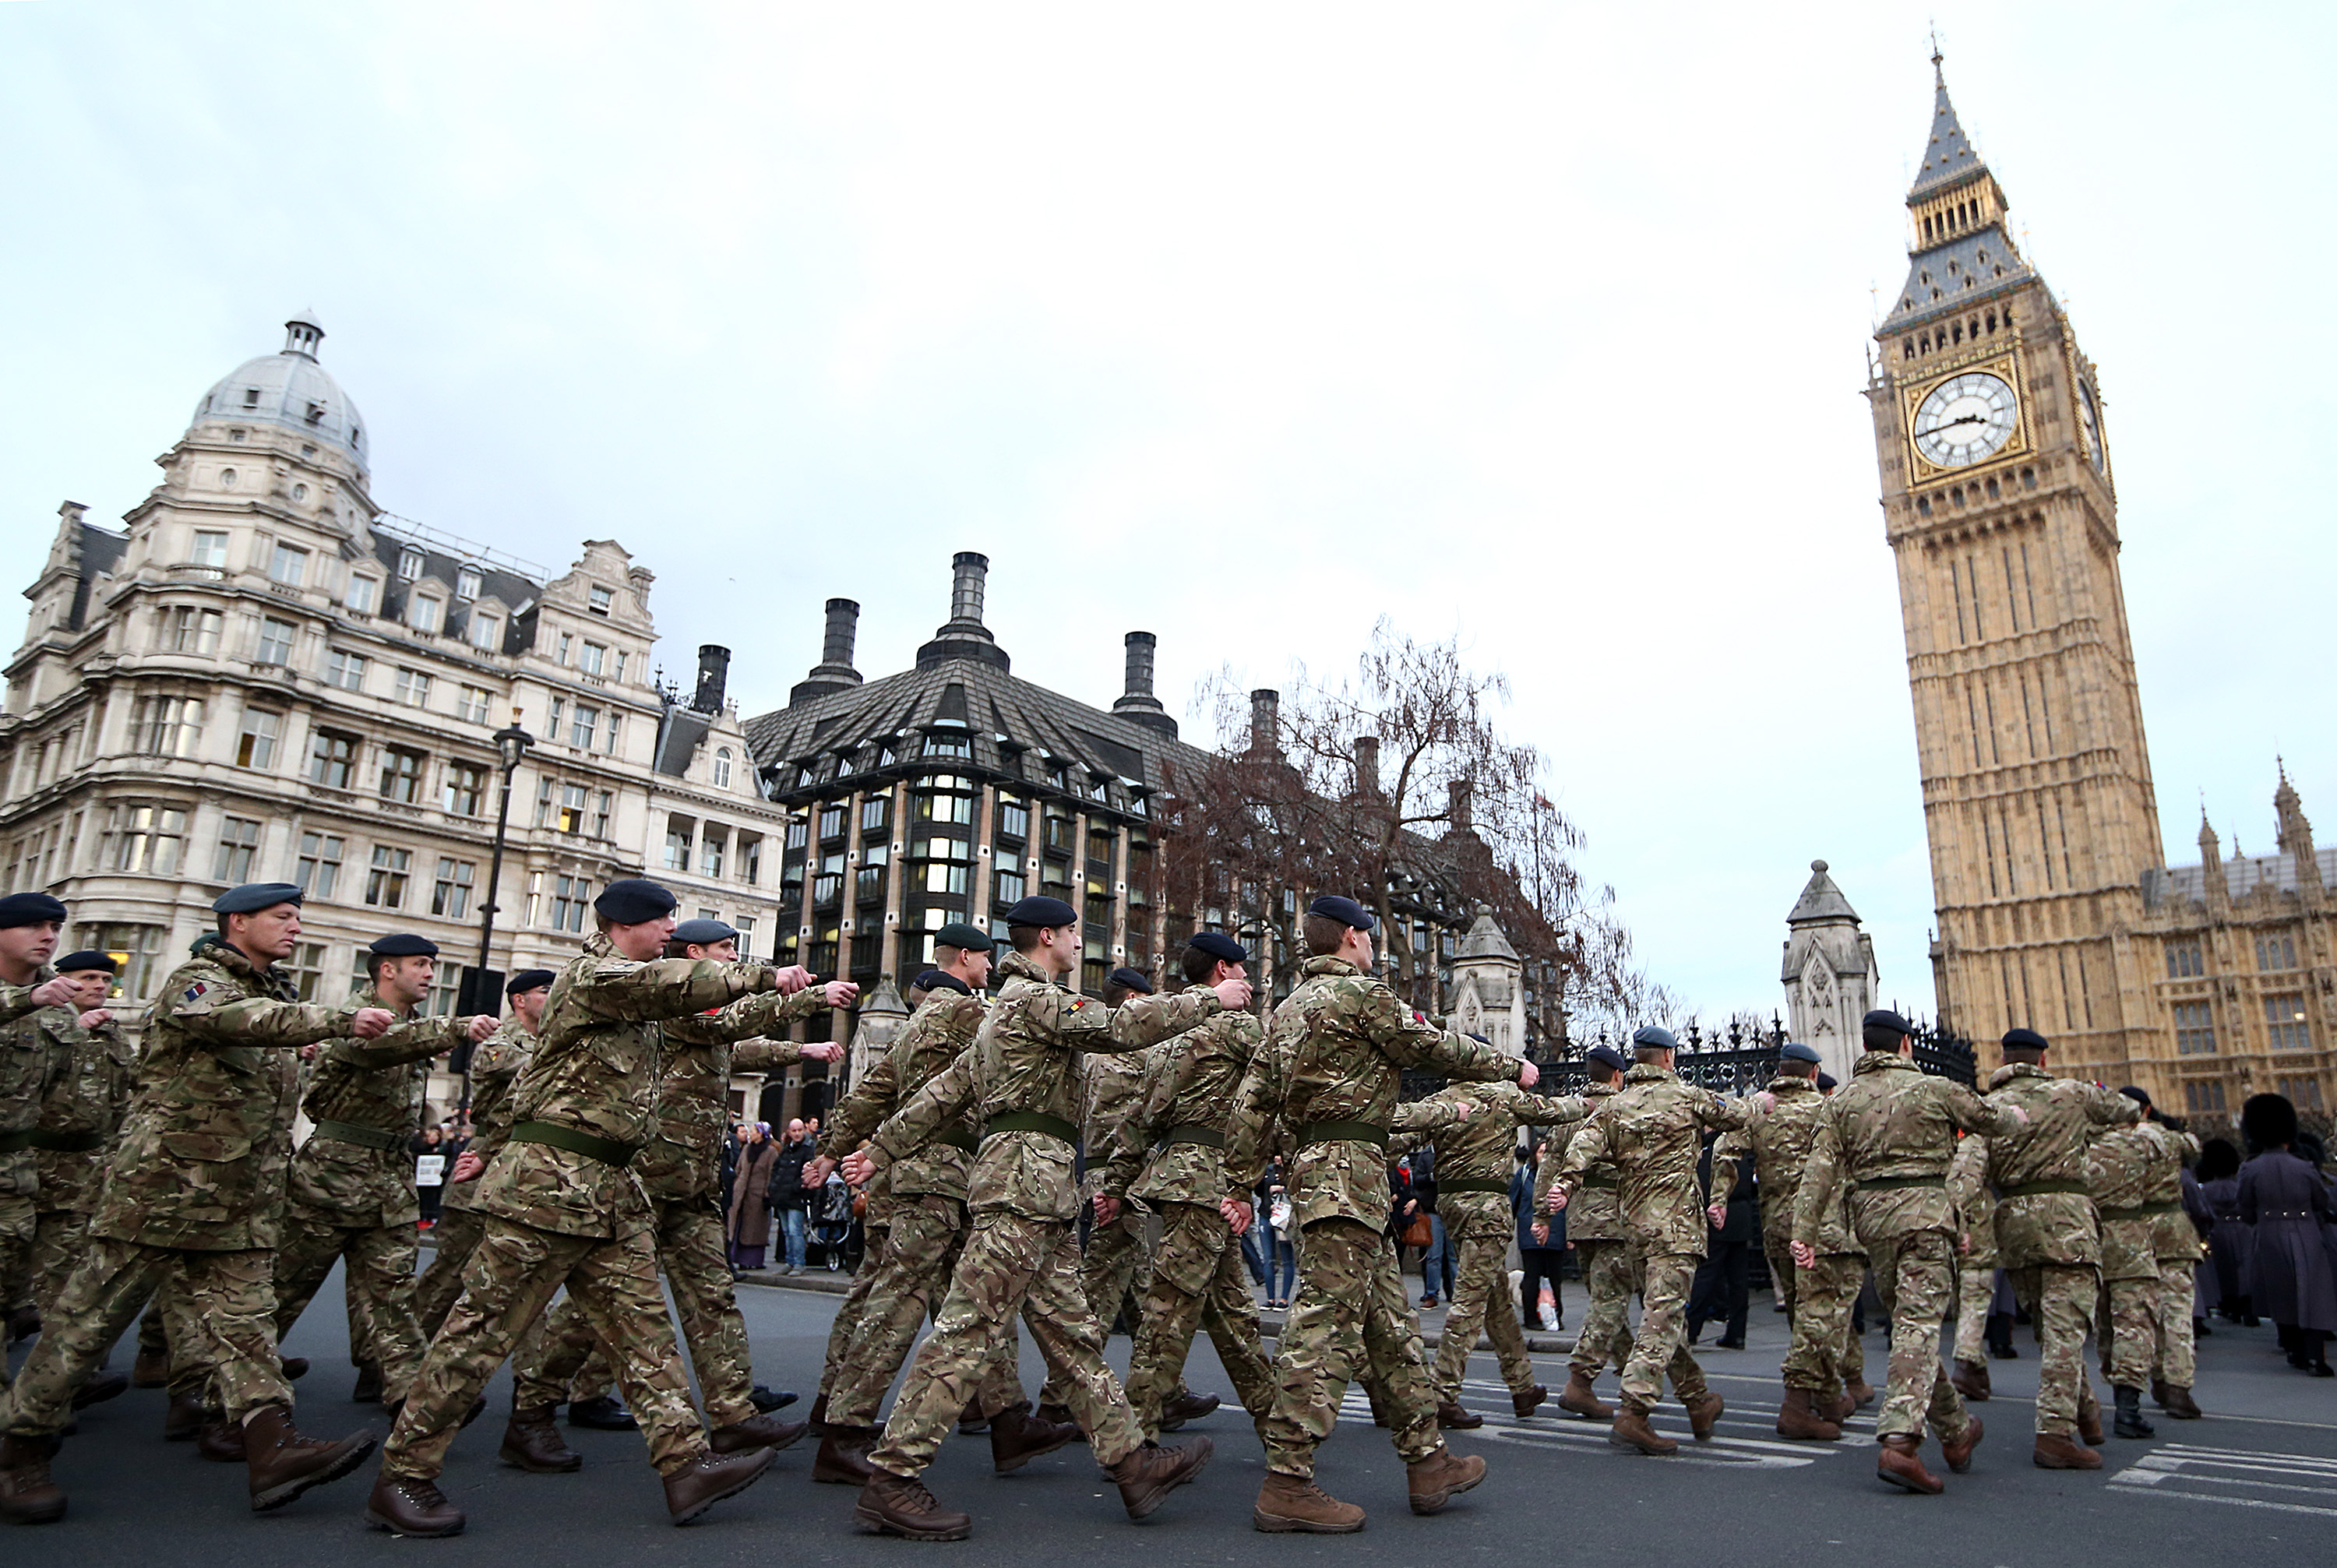 Military personnel march into the Houses of Parliament on January 26, 2015 in London, England. 120 military personnel from all three services were accompanied by the Band of the Grenadier Guards as they marched from Wellington Barracks to the Houses of Parliament. The march was led by Commander 102 Logistics Brigade Brigadier Darrell Amison, the final Commander of Joint Force Support for Operation Herrick and is their final march into their Houses of Parliament.